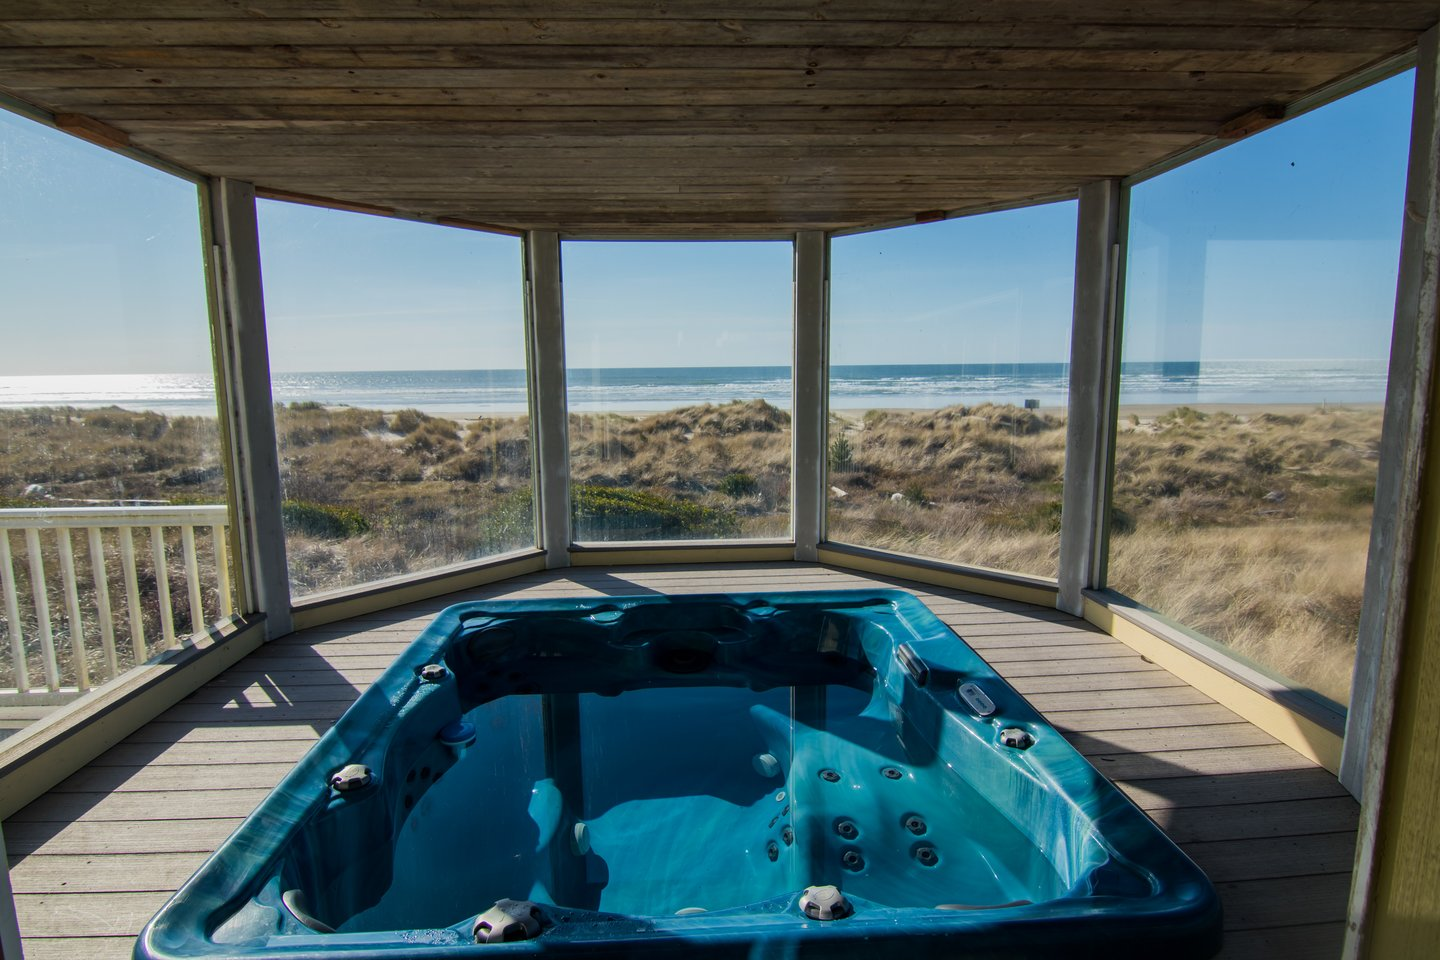 The enclosed hot tub is the perfect way to end the day.